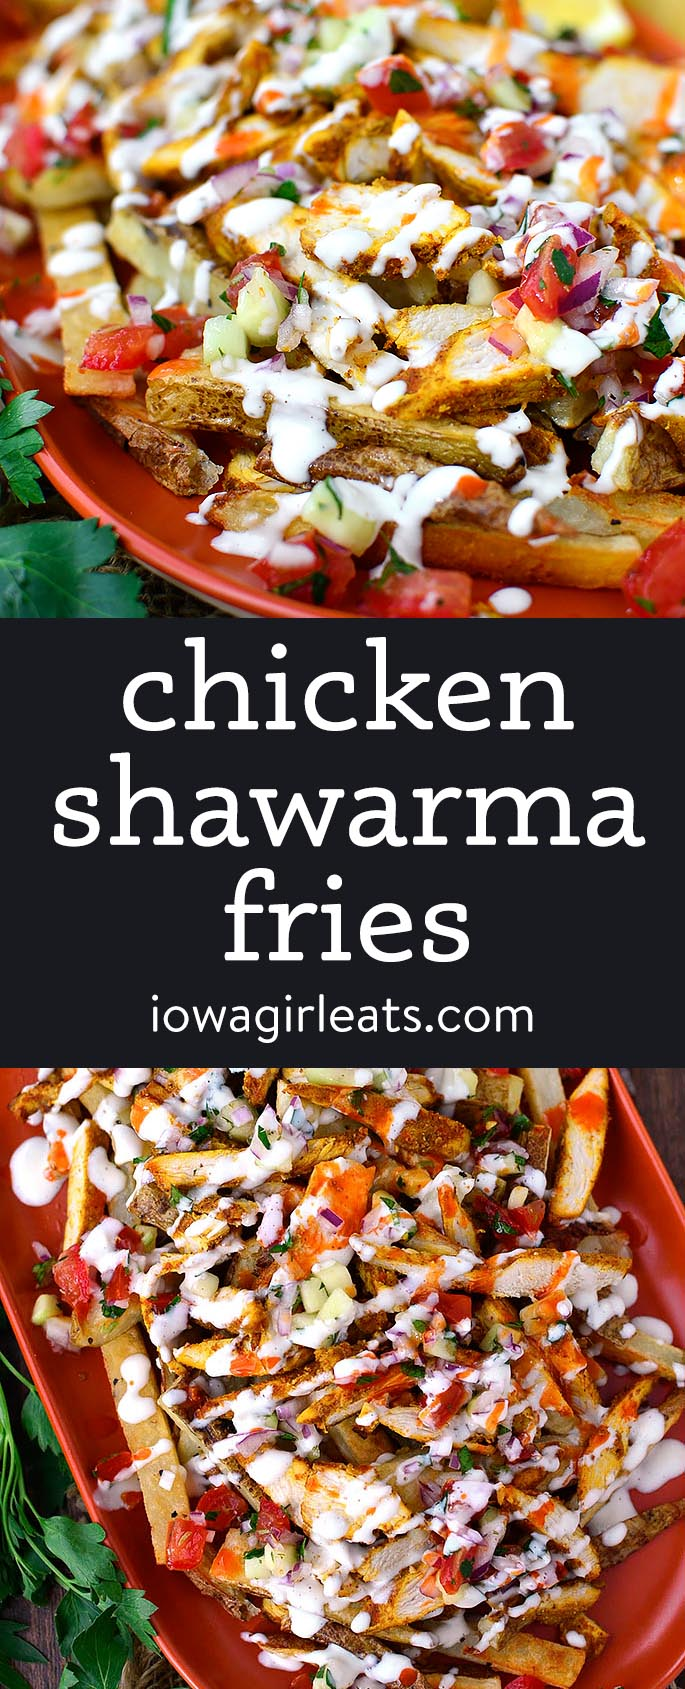 Photo collage of chicken shawarma fries